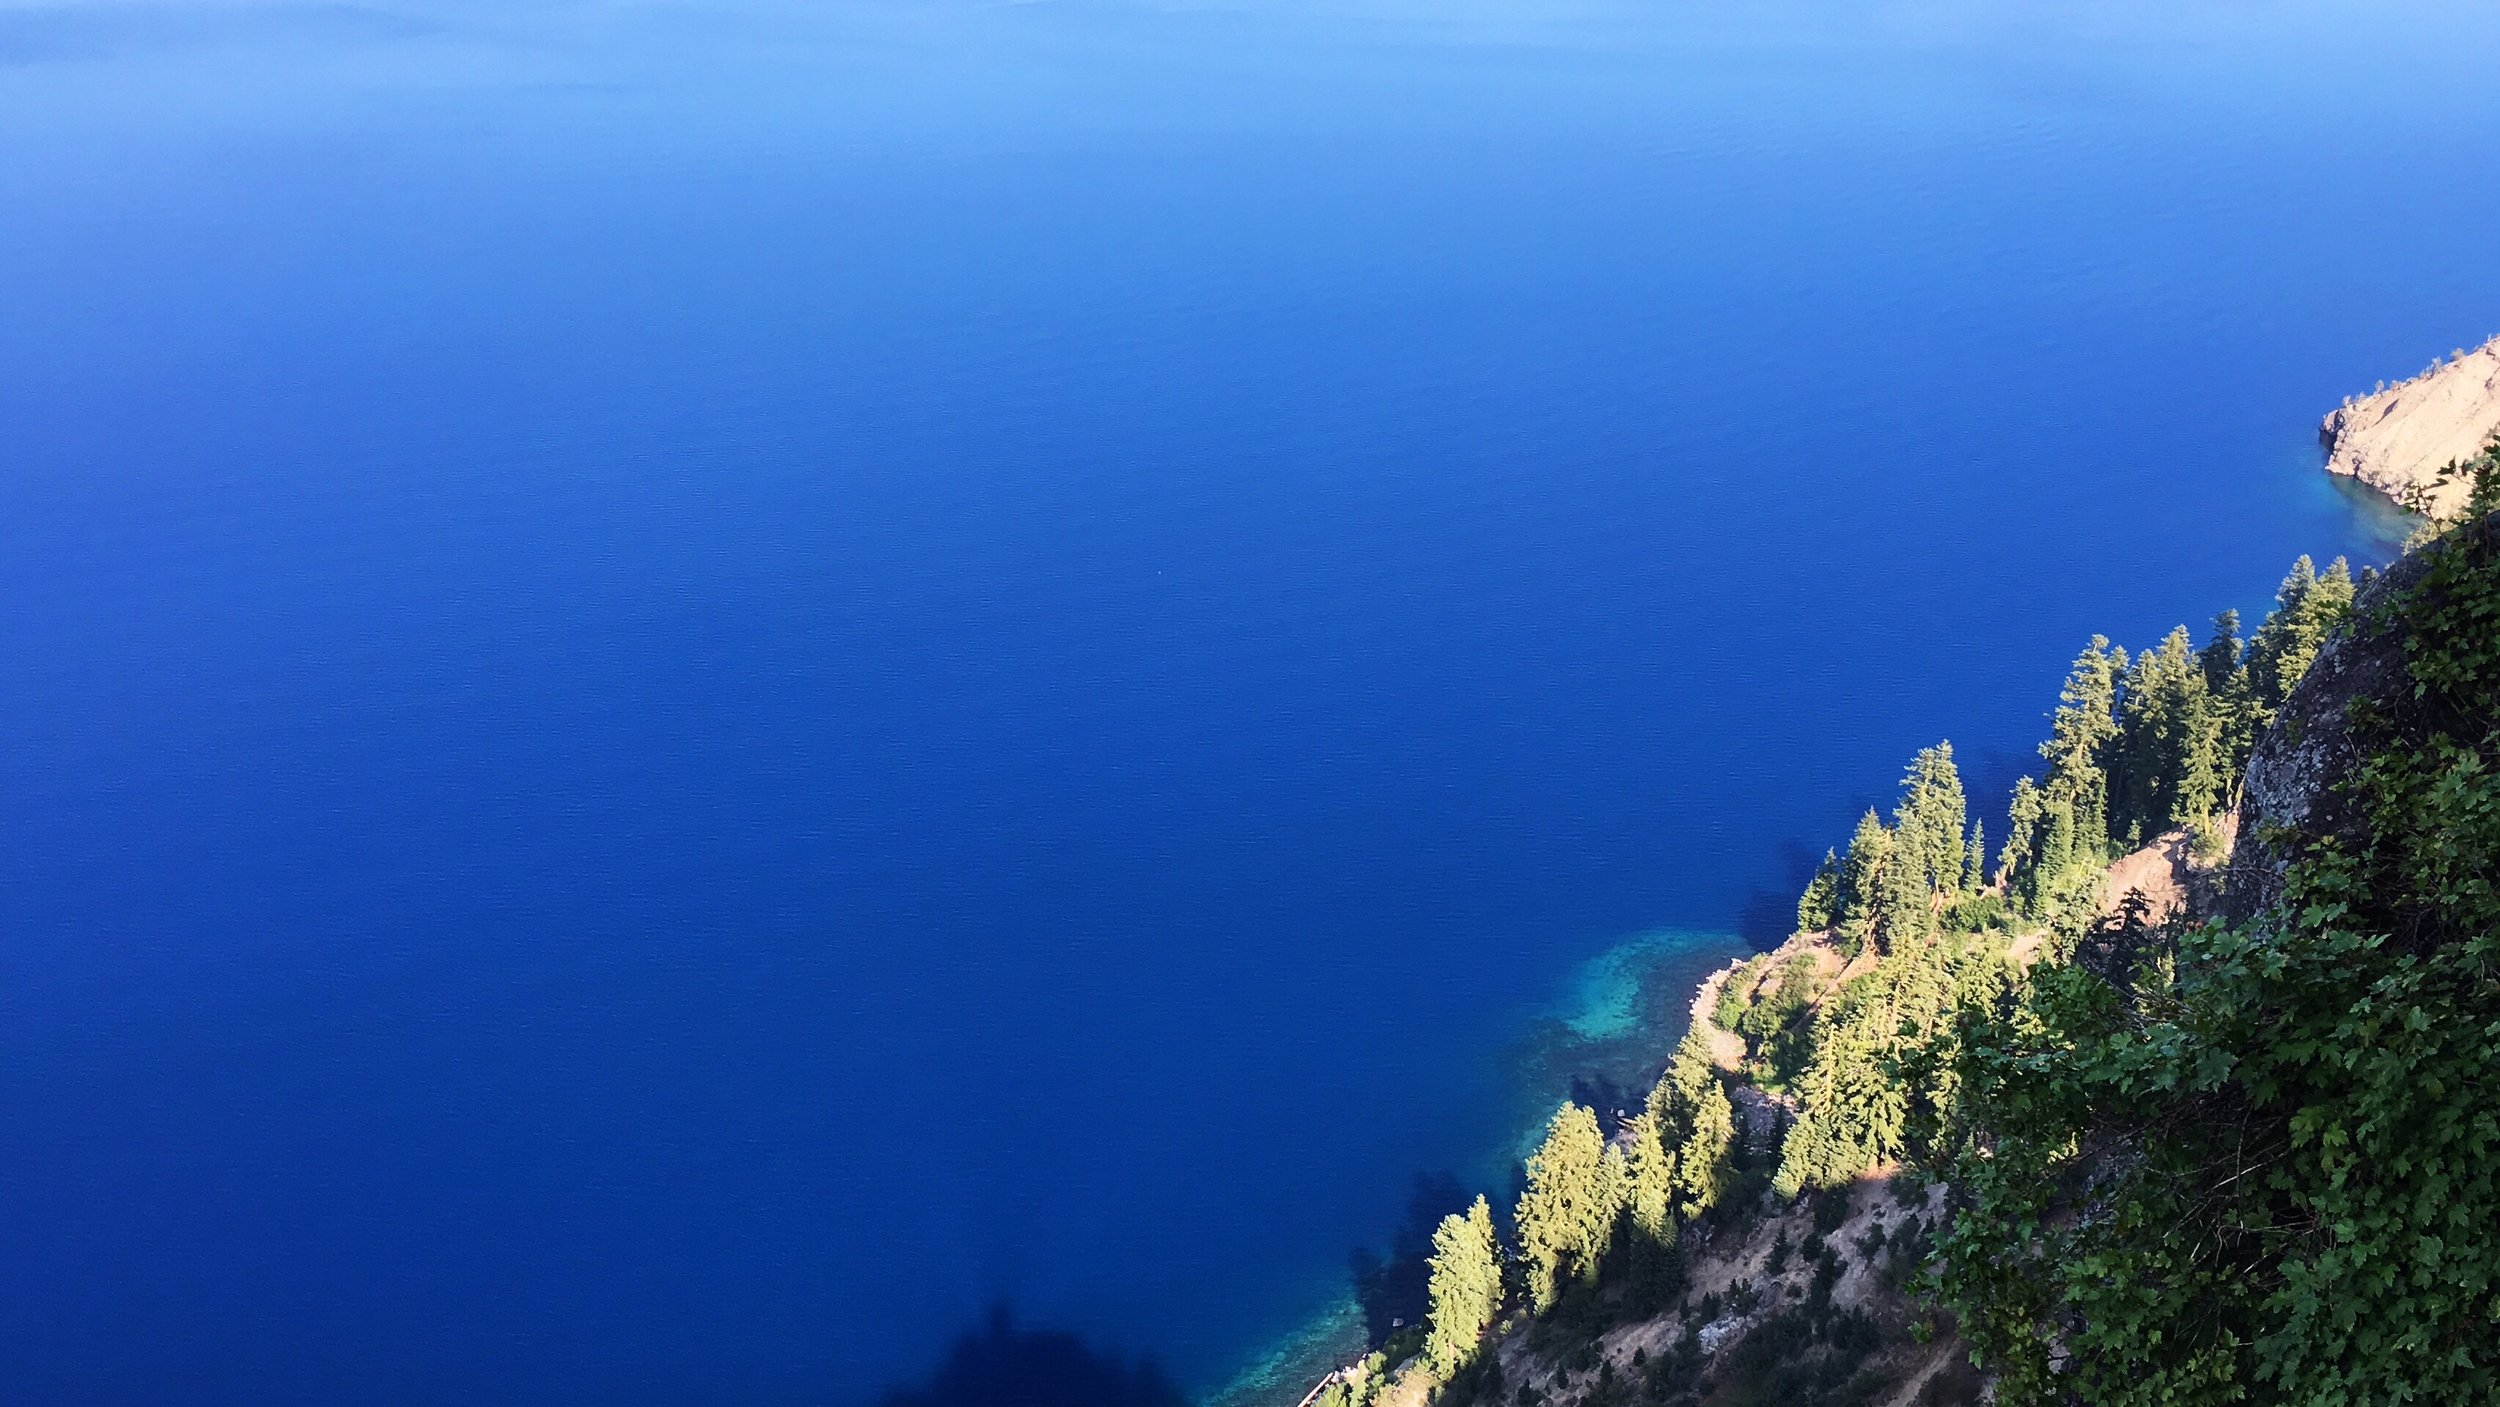 Unbelievably blue - Crater Lake